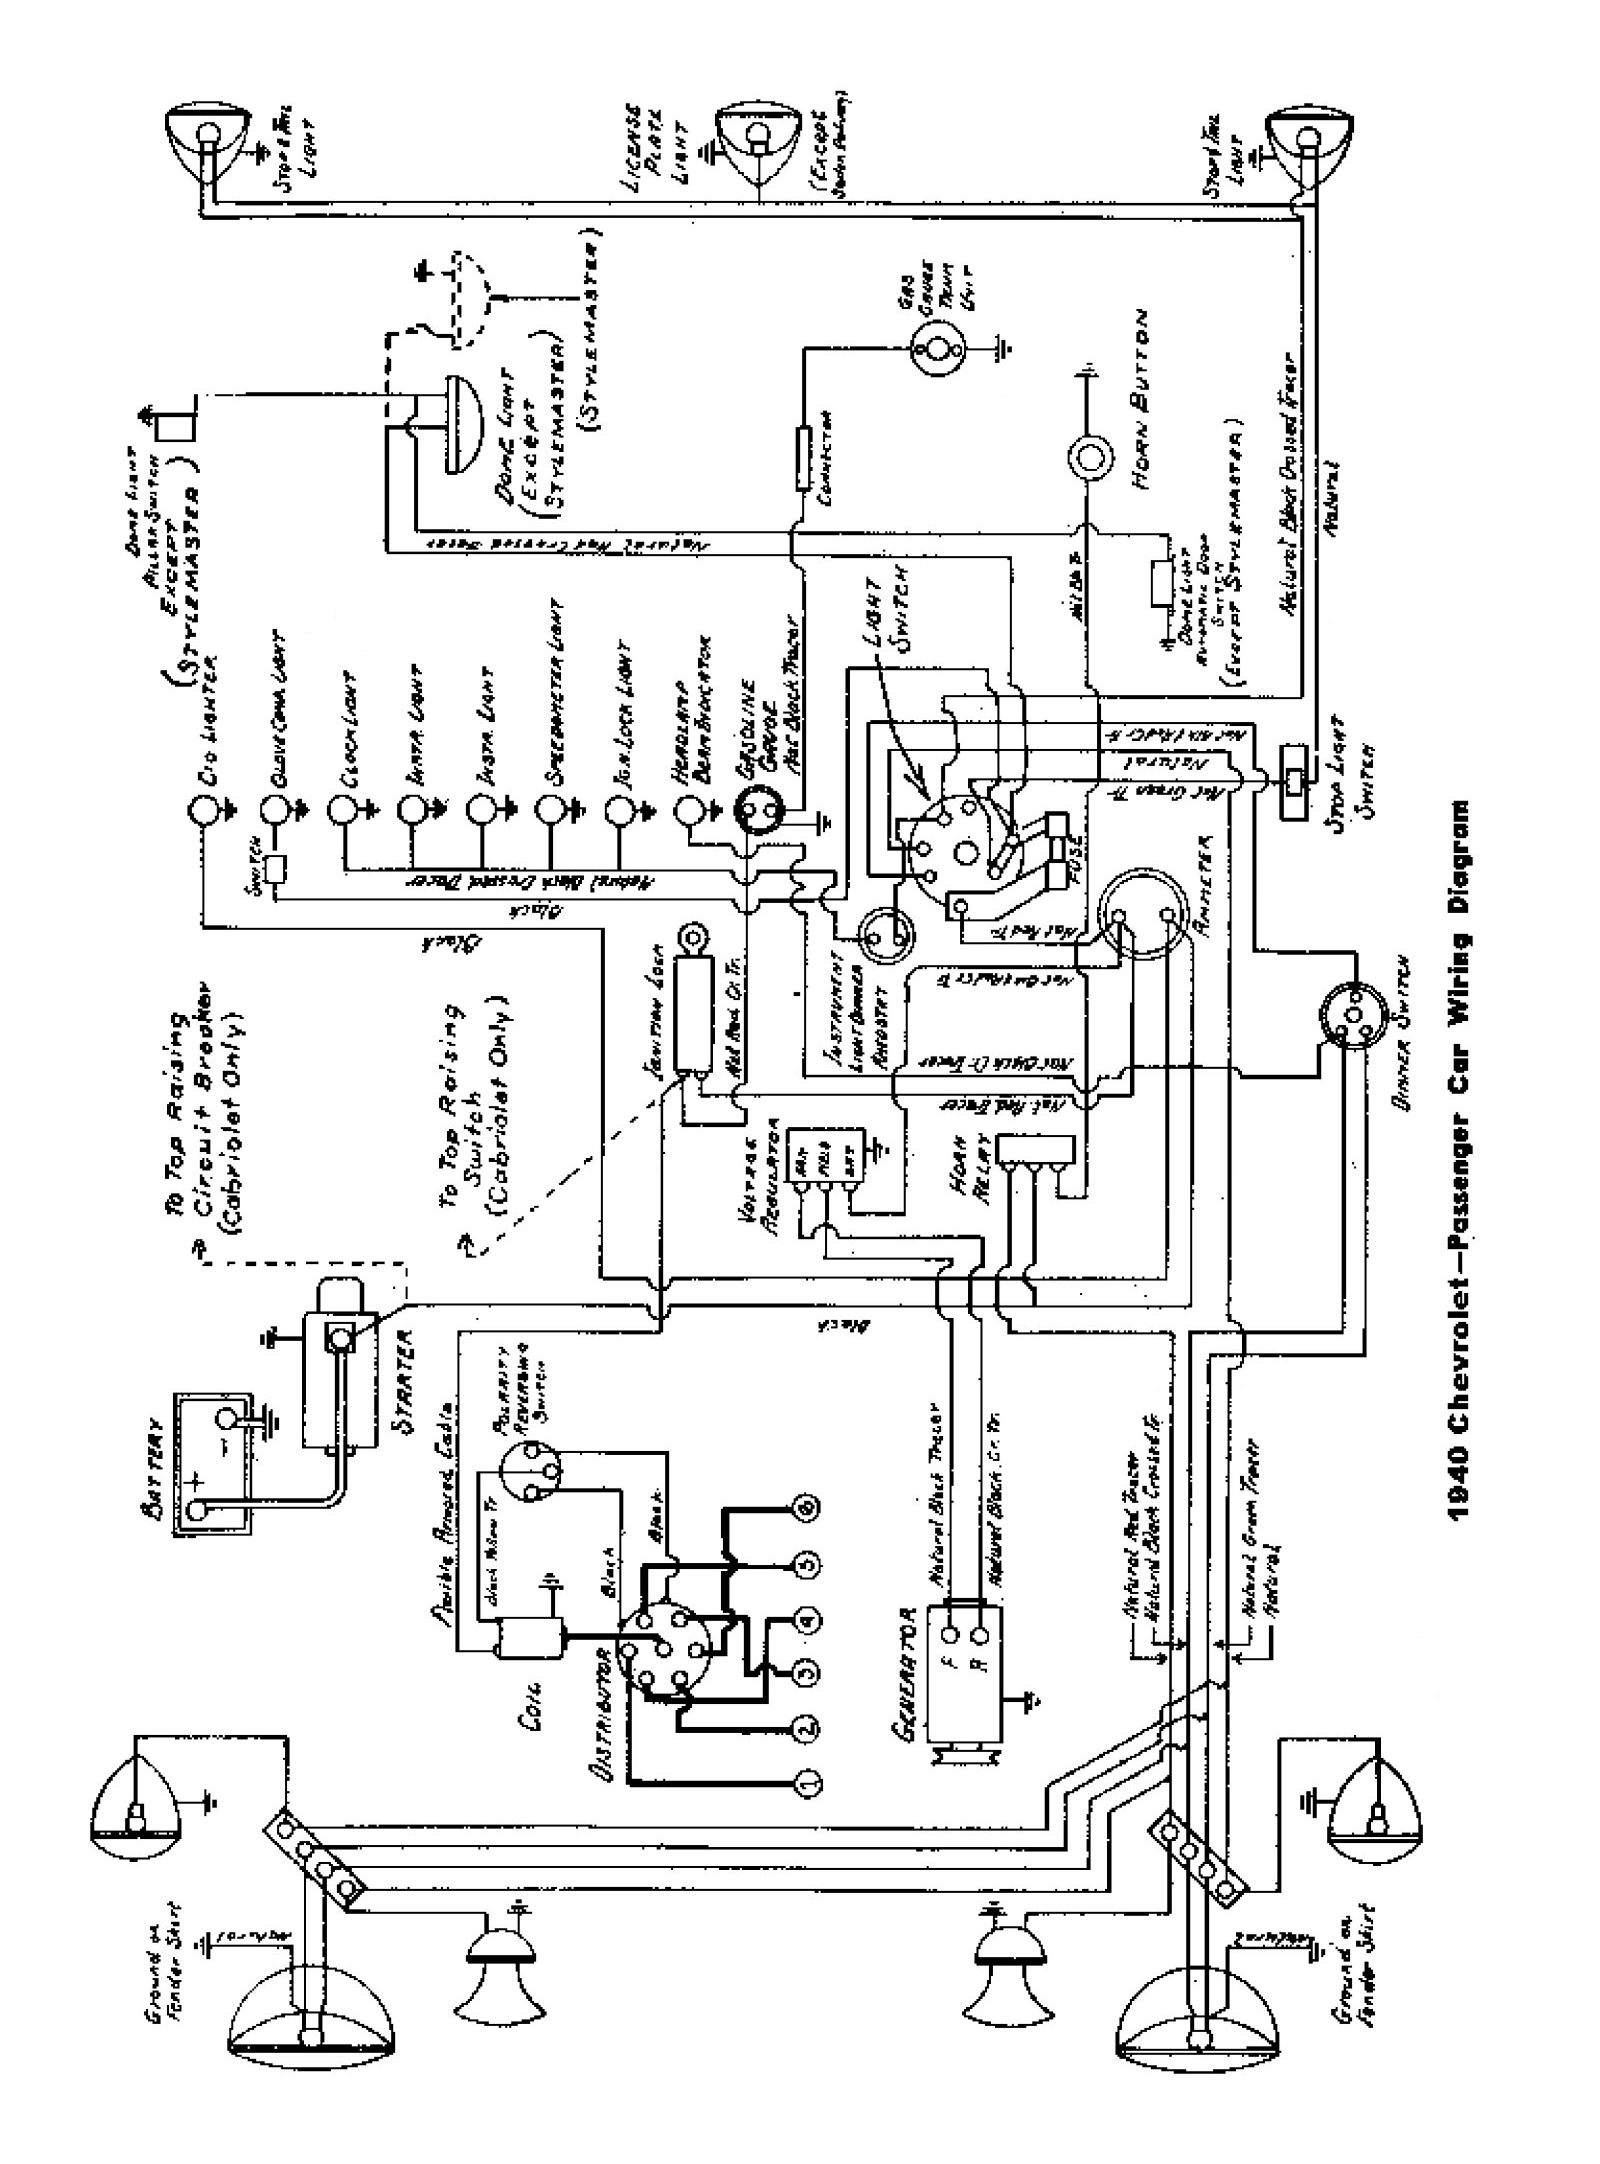 1935 ford ignition wiring diagram